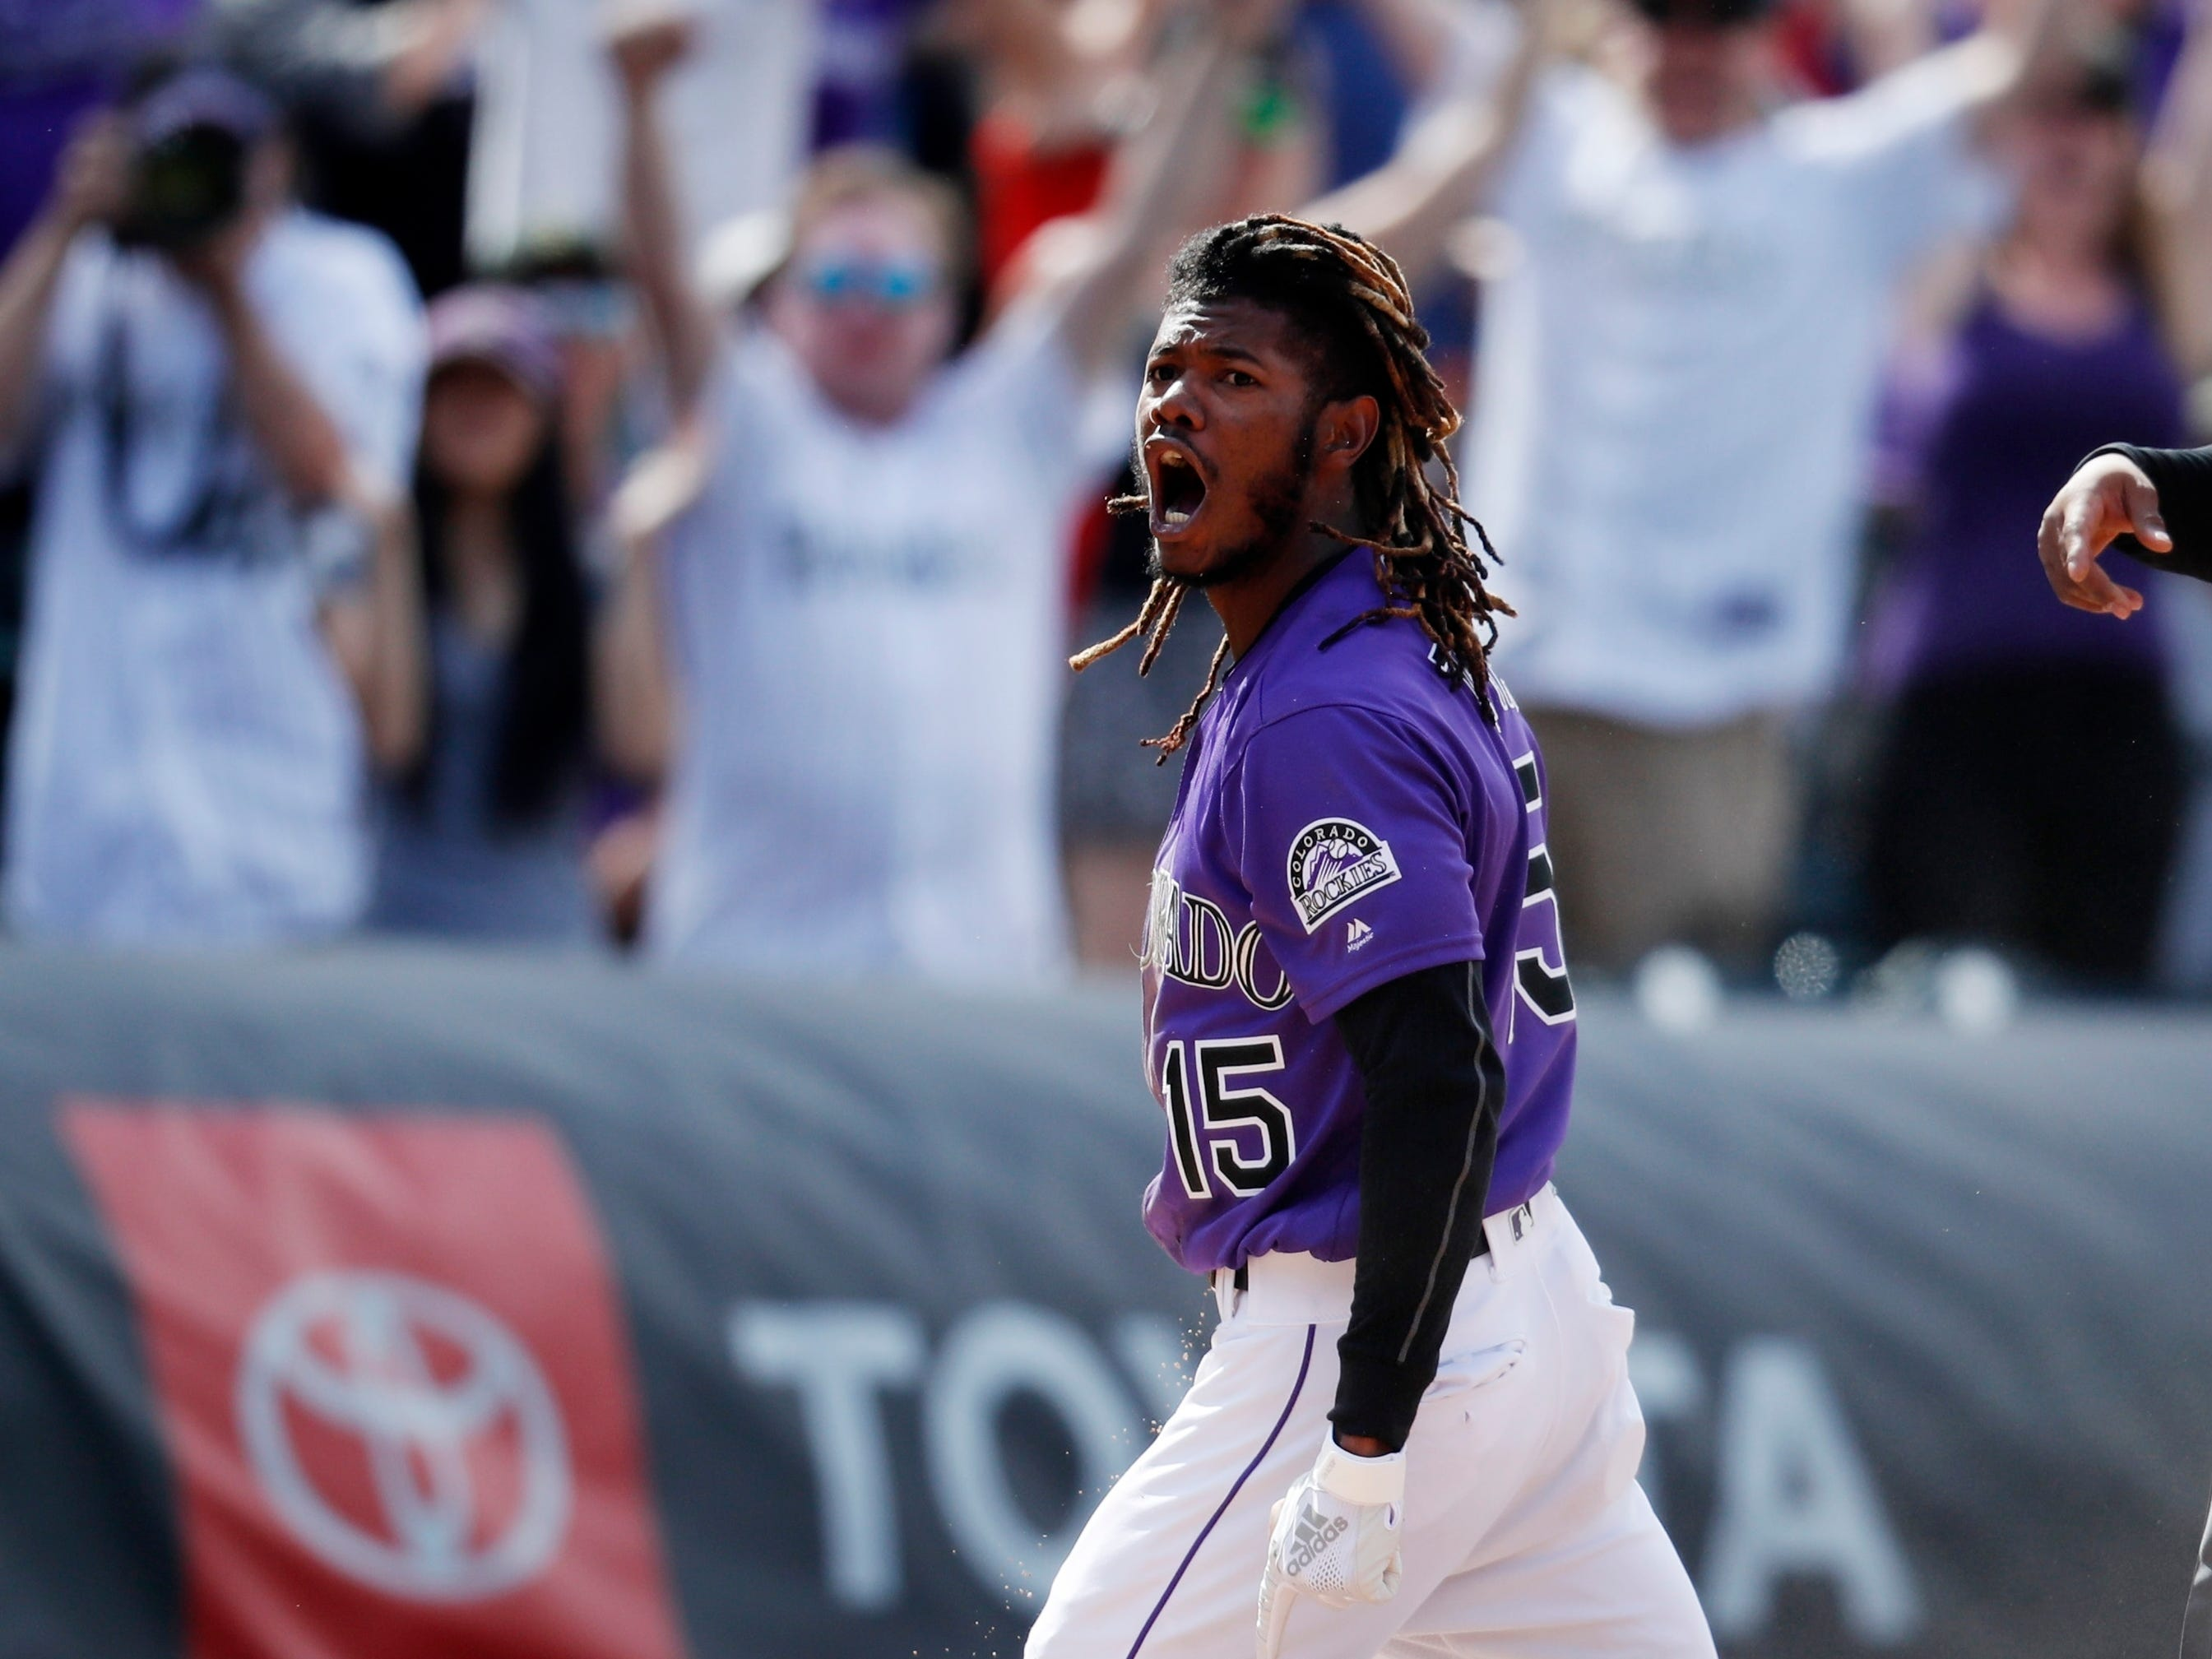 Colorado Rockies' Raimel Tapia rects after tripling to drive in three runs off Arizona Diamondbacks relief pitcher Archie Bradley in the eighth inning of a baseball game Sunday, May 5, 2019, in Denver. (AP Photo/David Zalubowski)